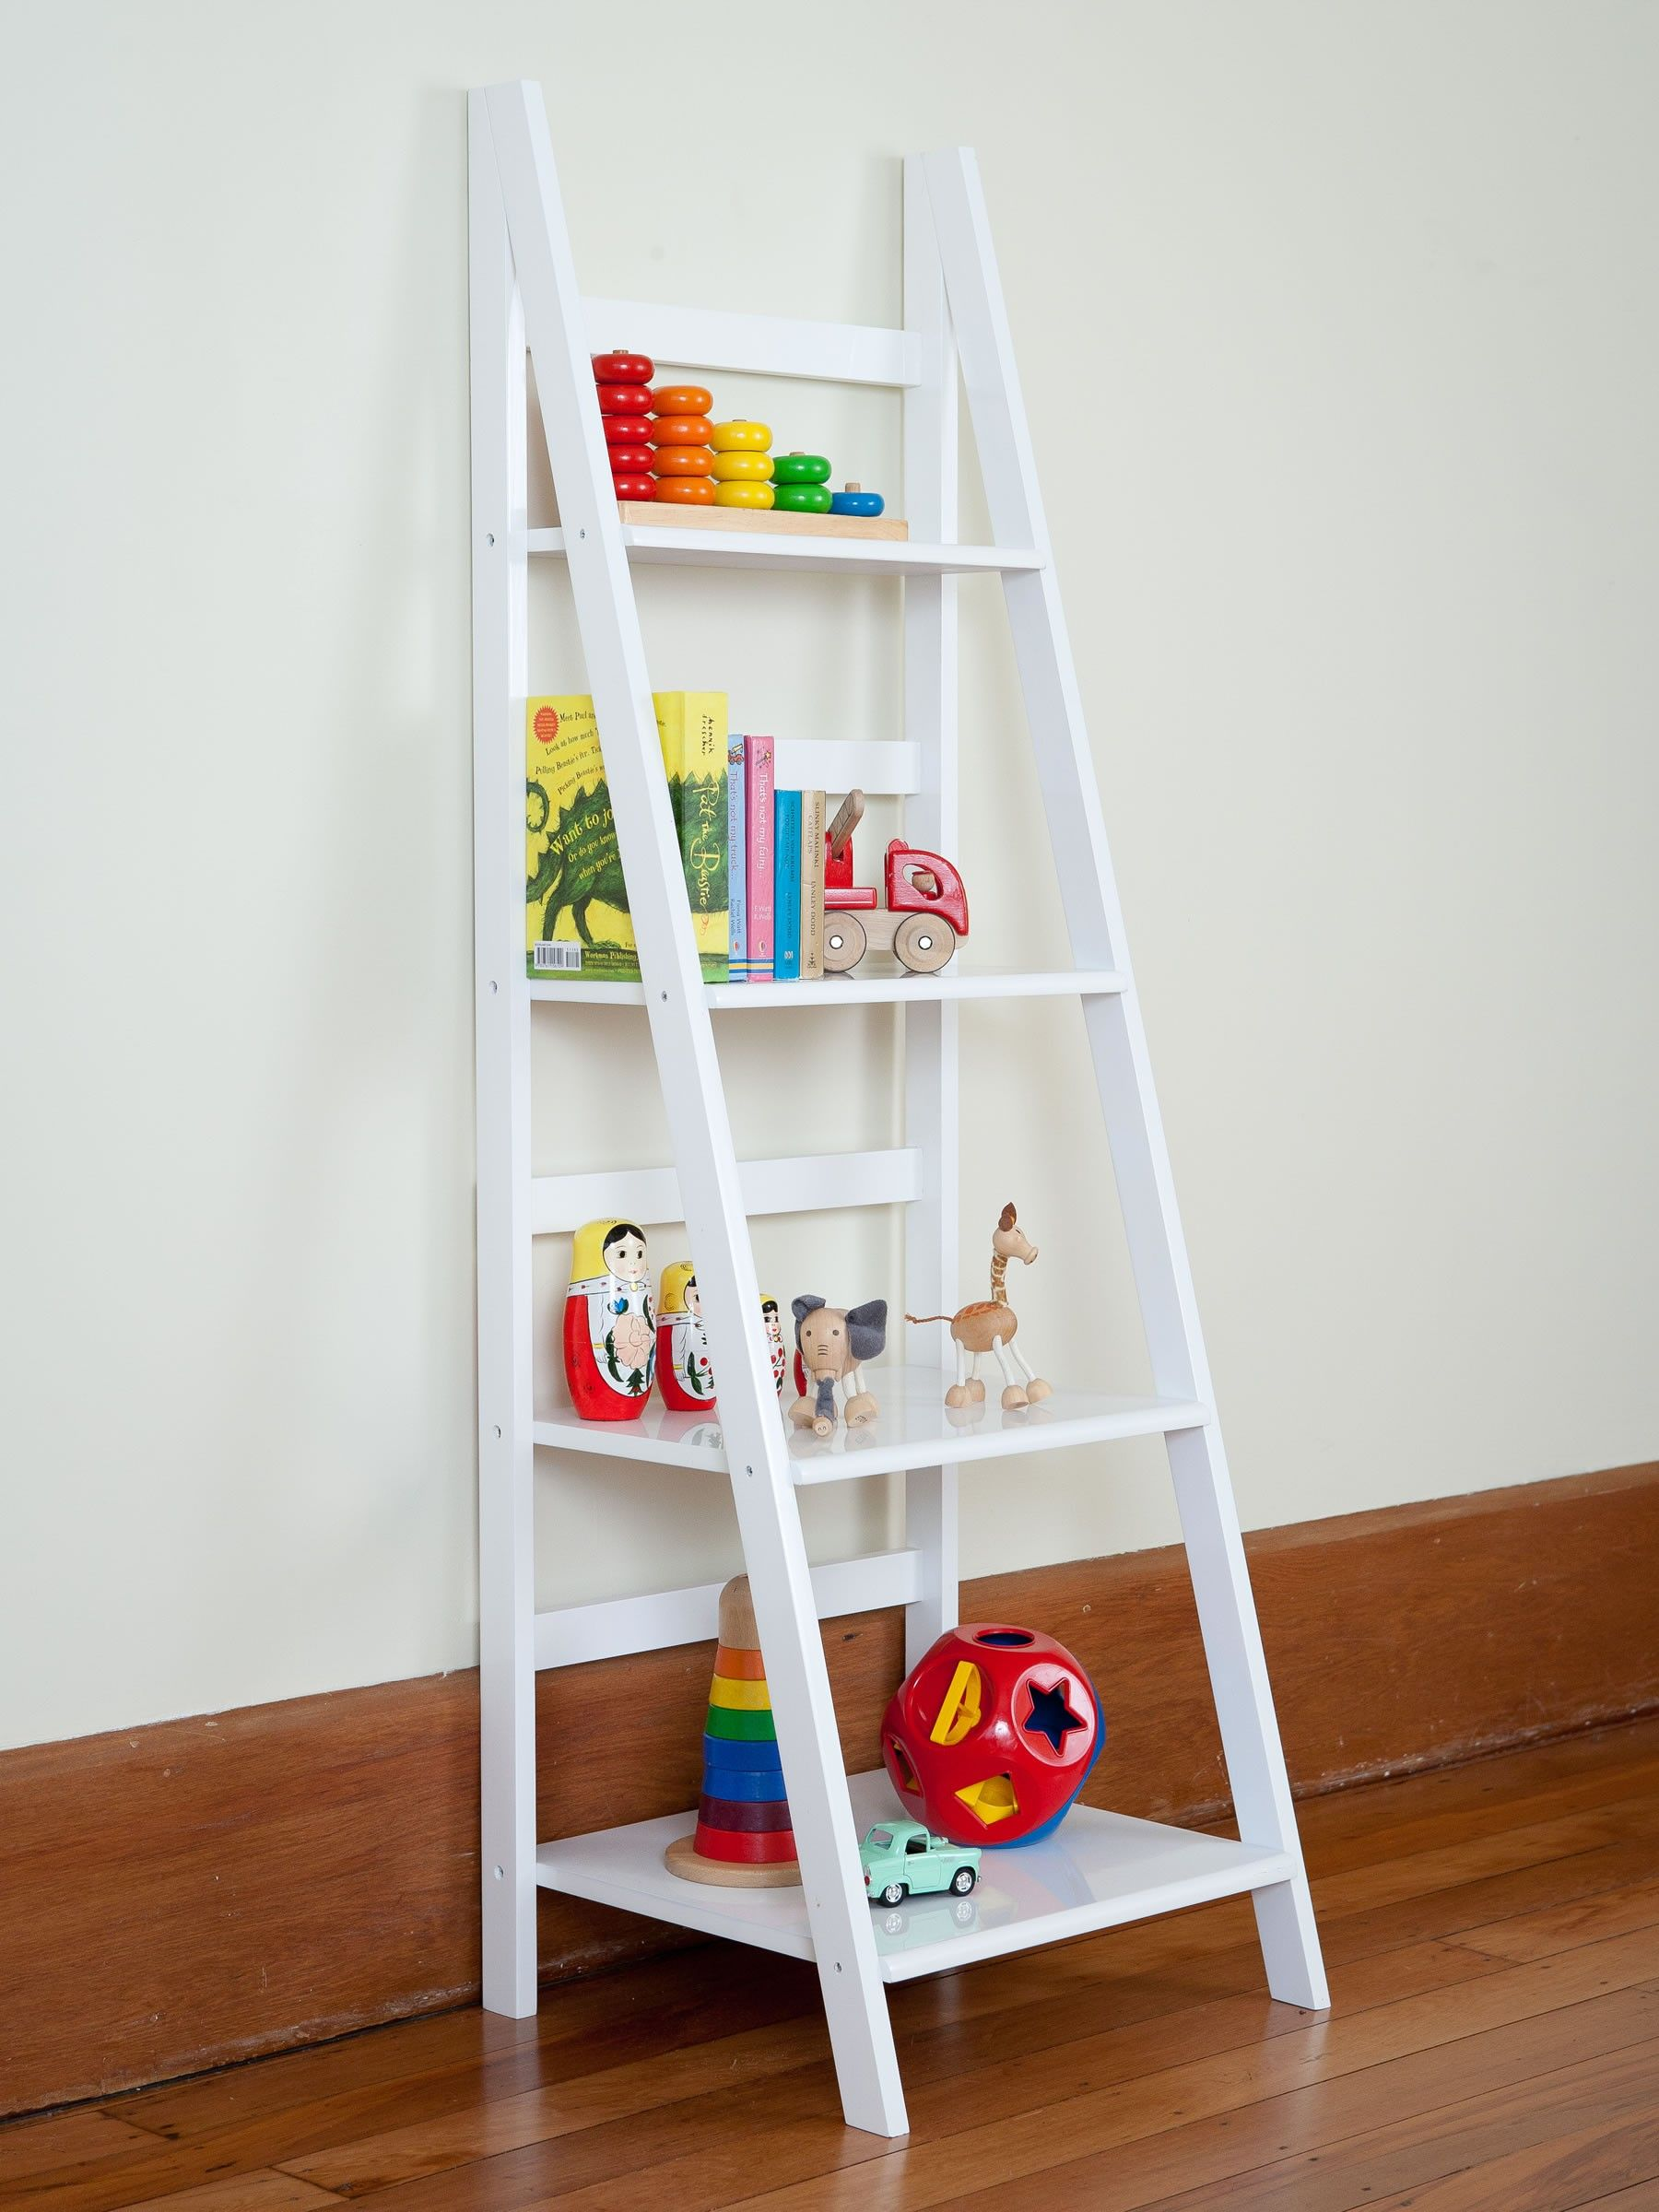 Enjoyable White Wooden Ladder Shelf As Toys Storage Added White Wall Painted Also Wood Floors In Kids Room D